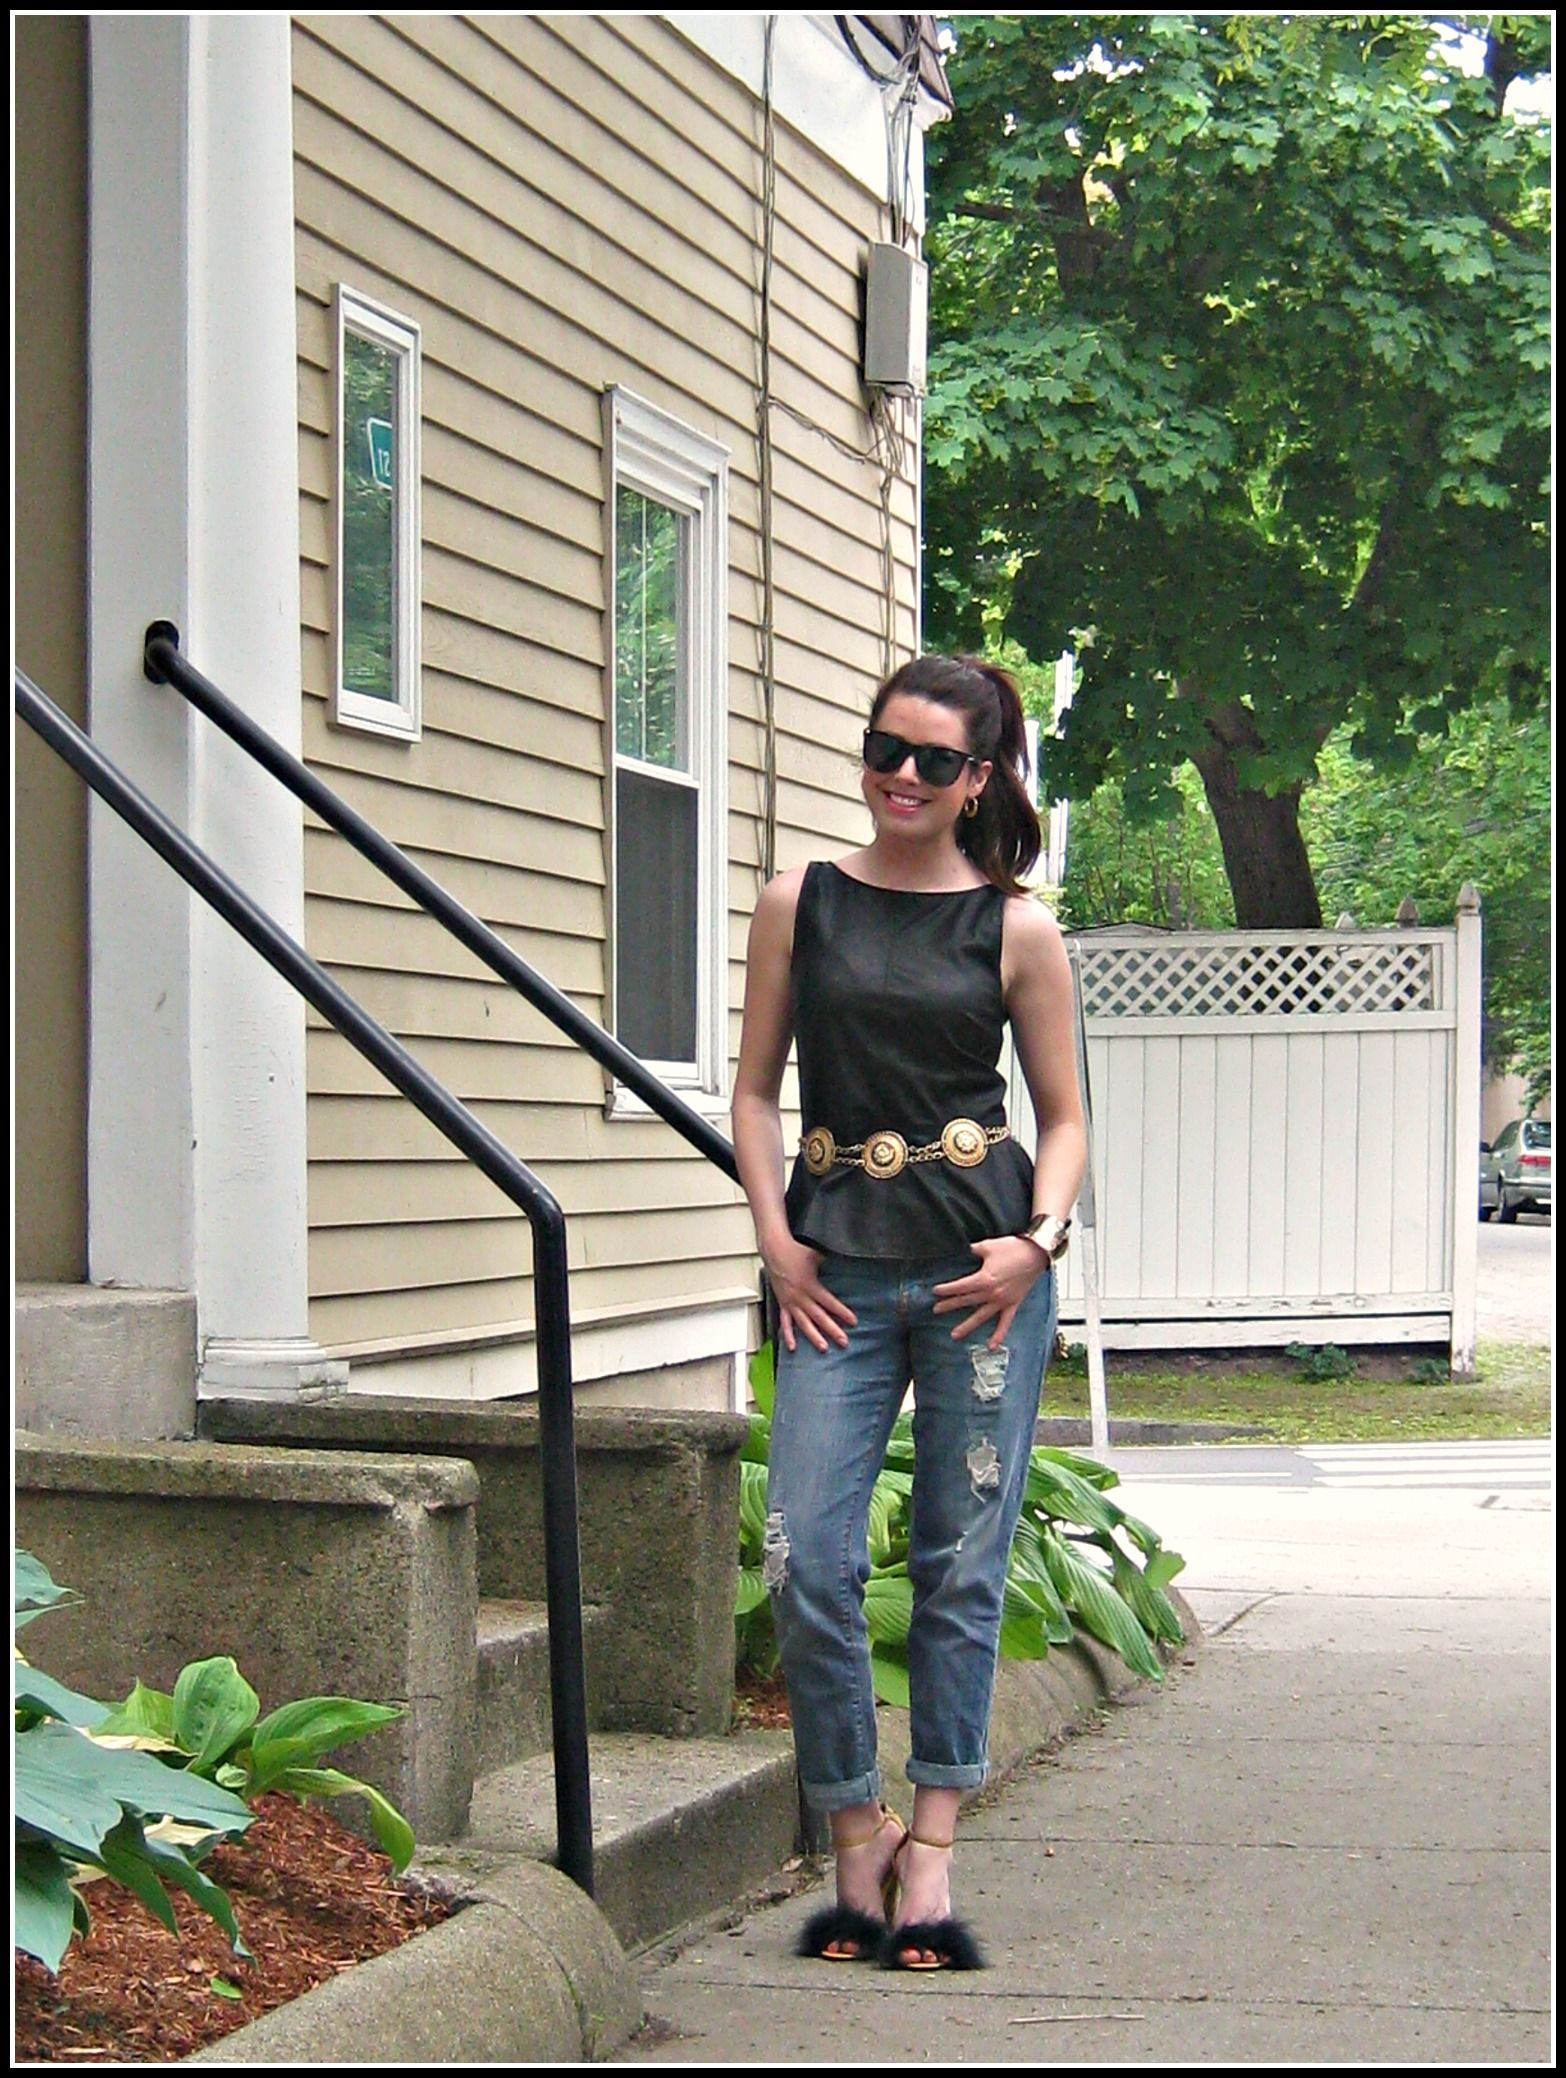 #Boyfriendjeans , vintage belt, faux fur shoes, leather #peplum #ASOS #Zara #blogger #ootd #lookbook http://thefabulouslifeofanaturaldisaster.com/2013/05/20/ootd-all-about-the-shoes/